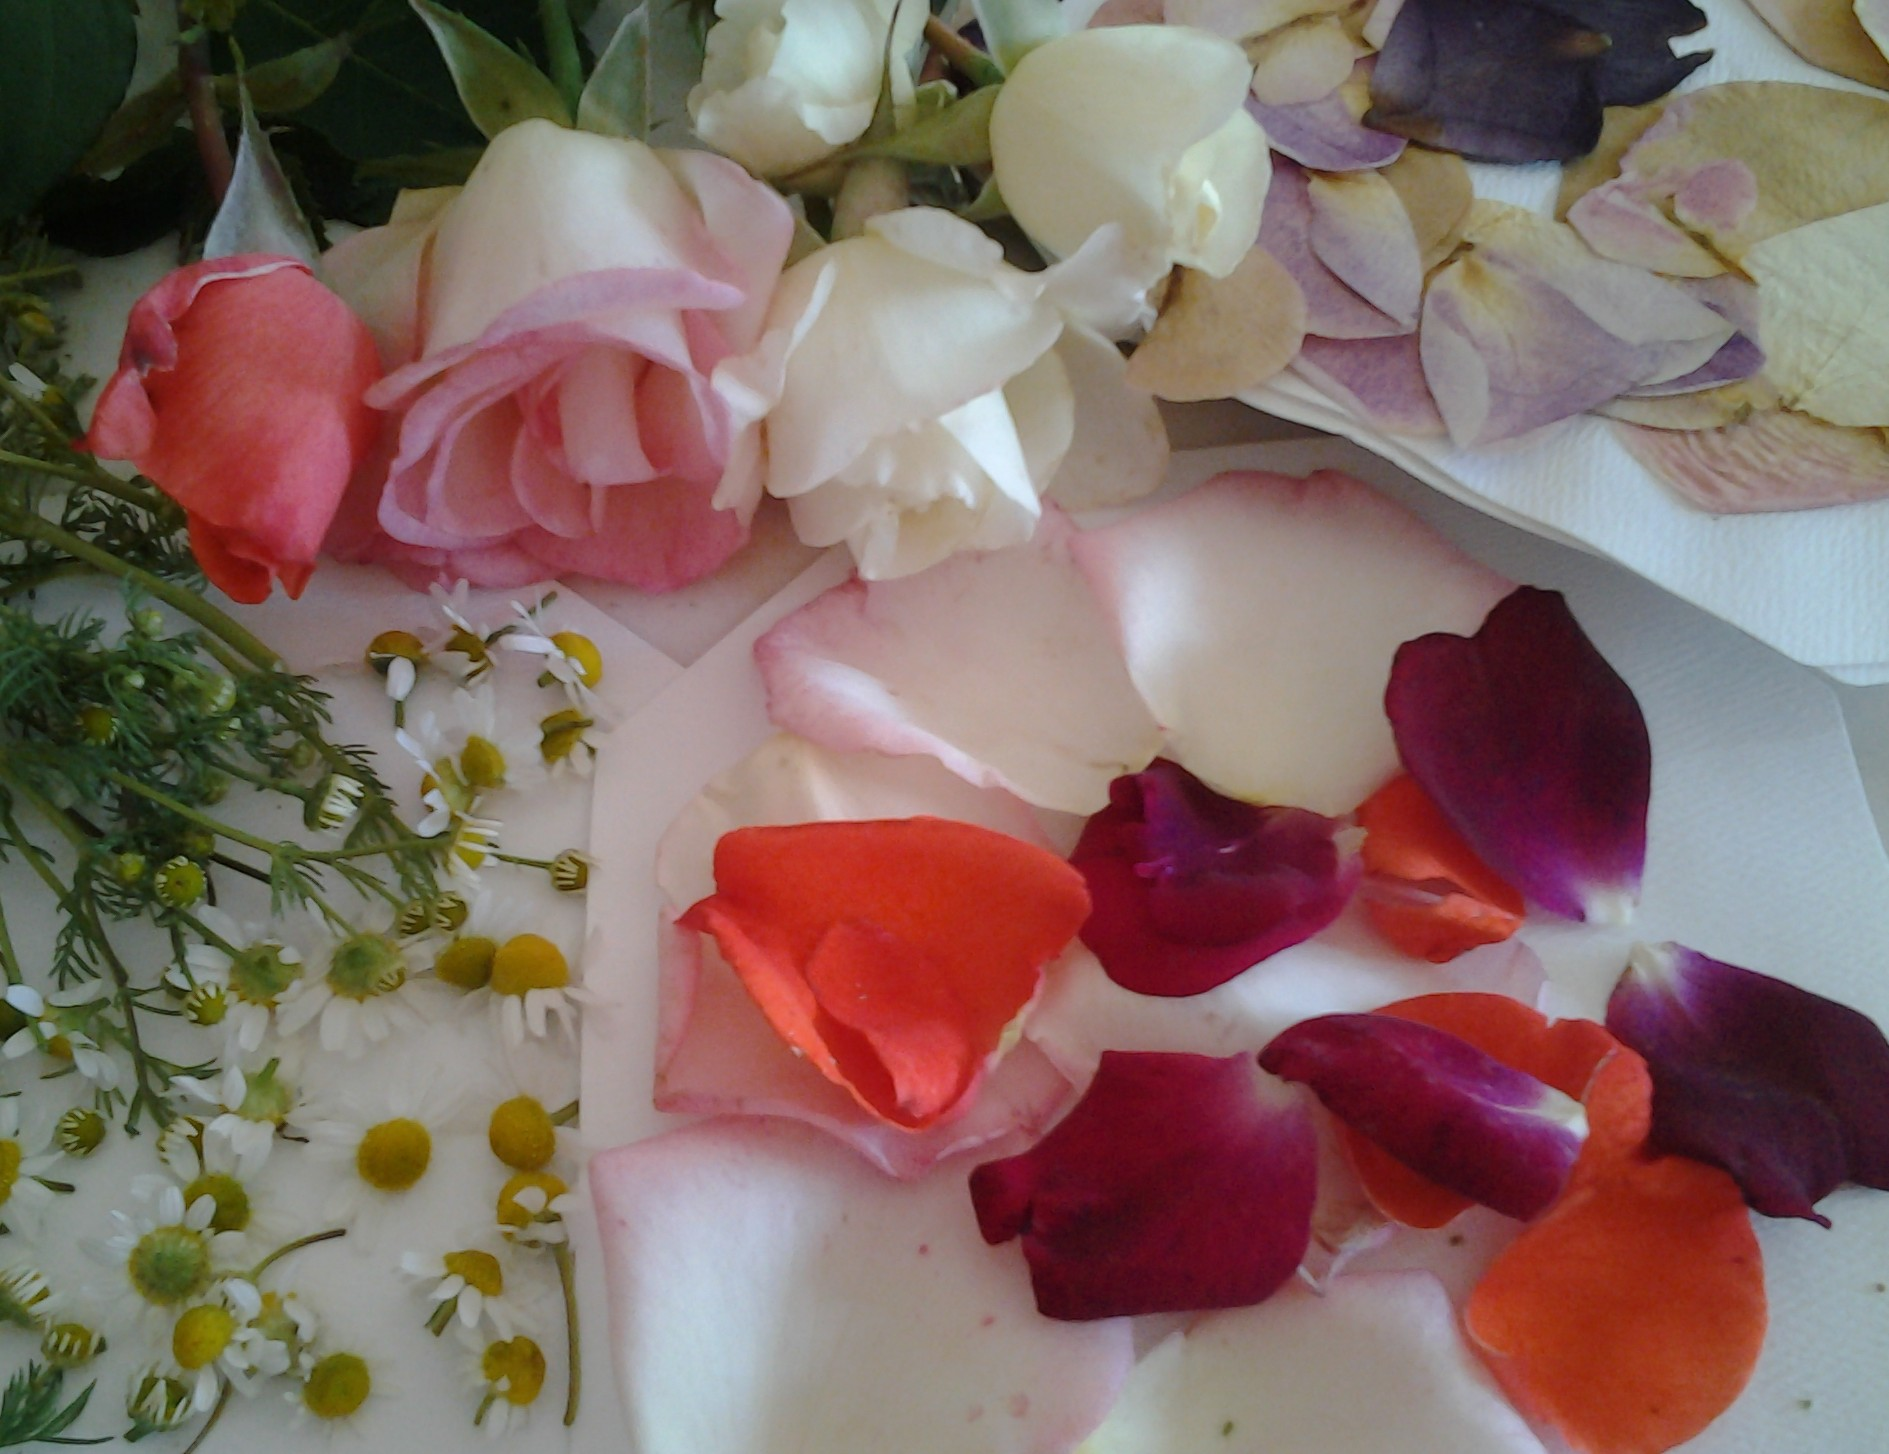 rose & chamomile petals getting ready for drying out. Last years dried rose petals top right